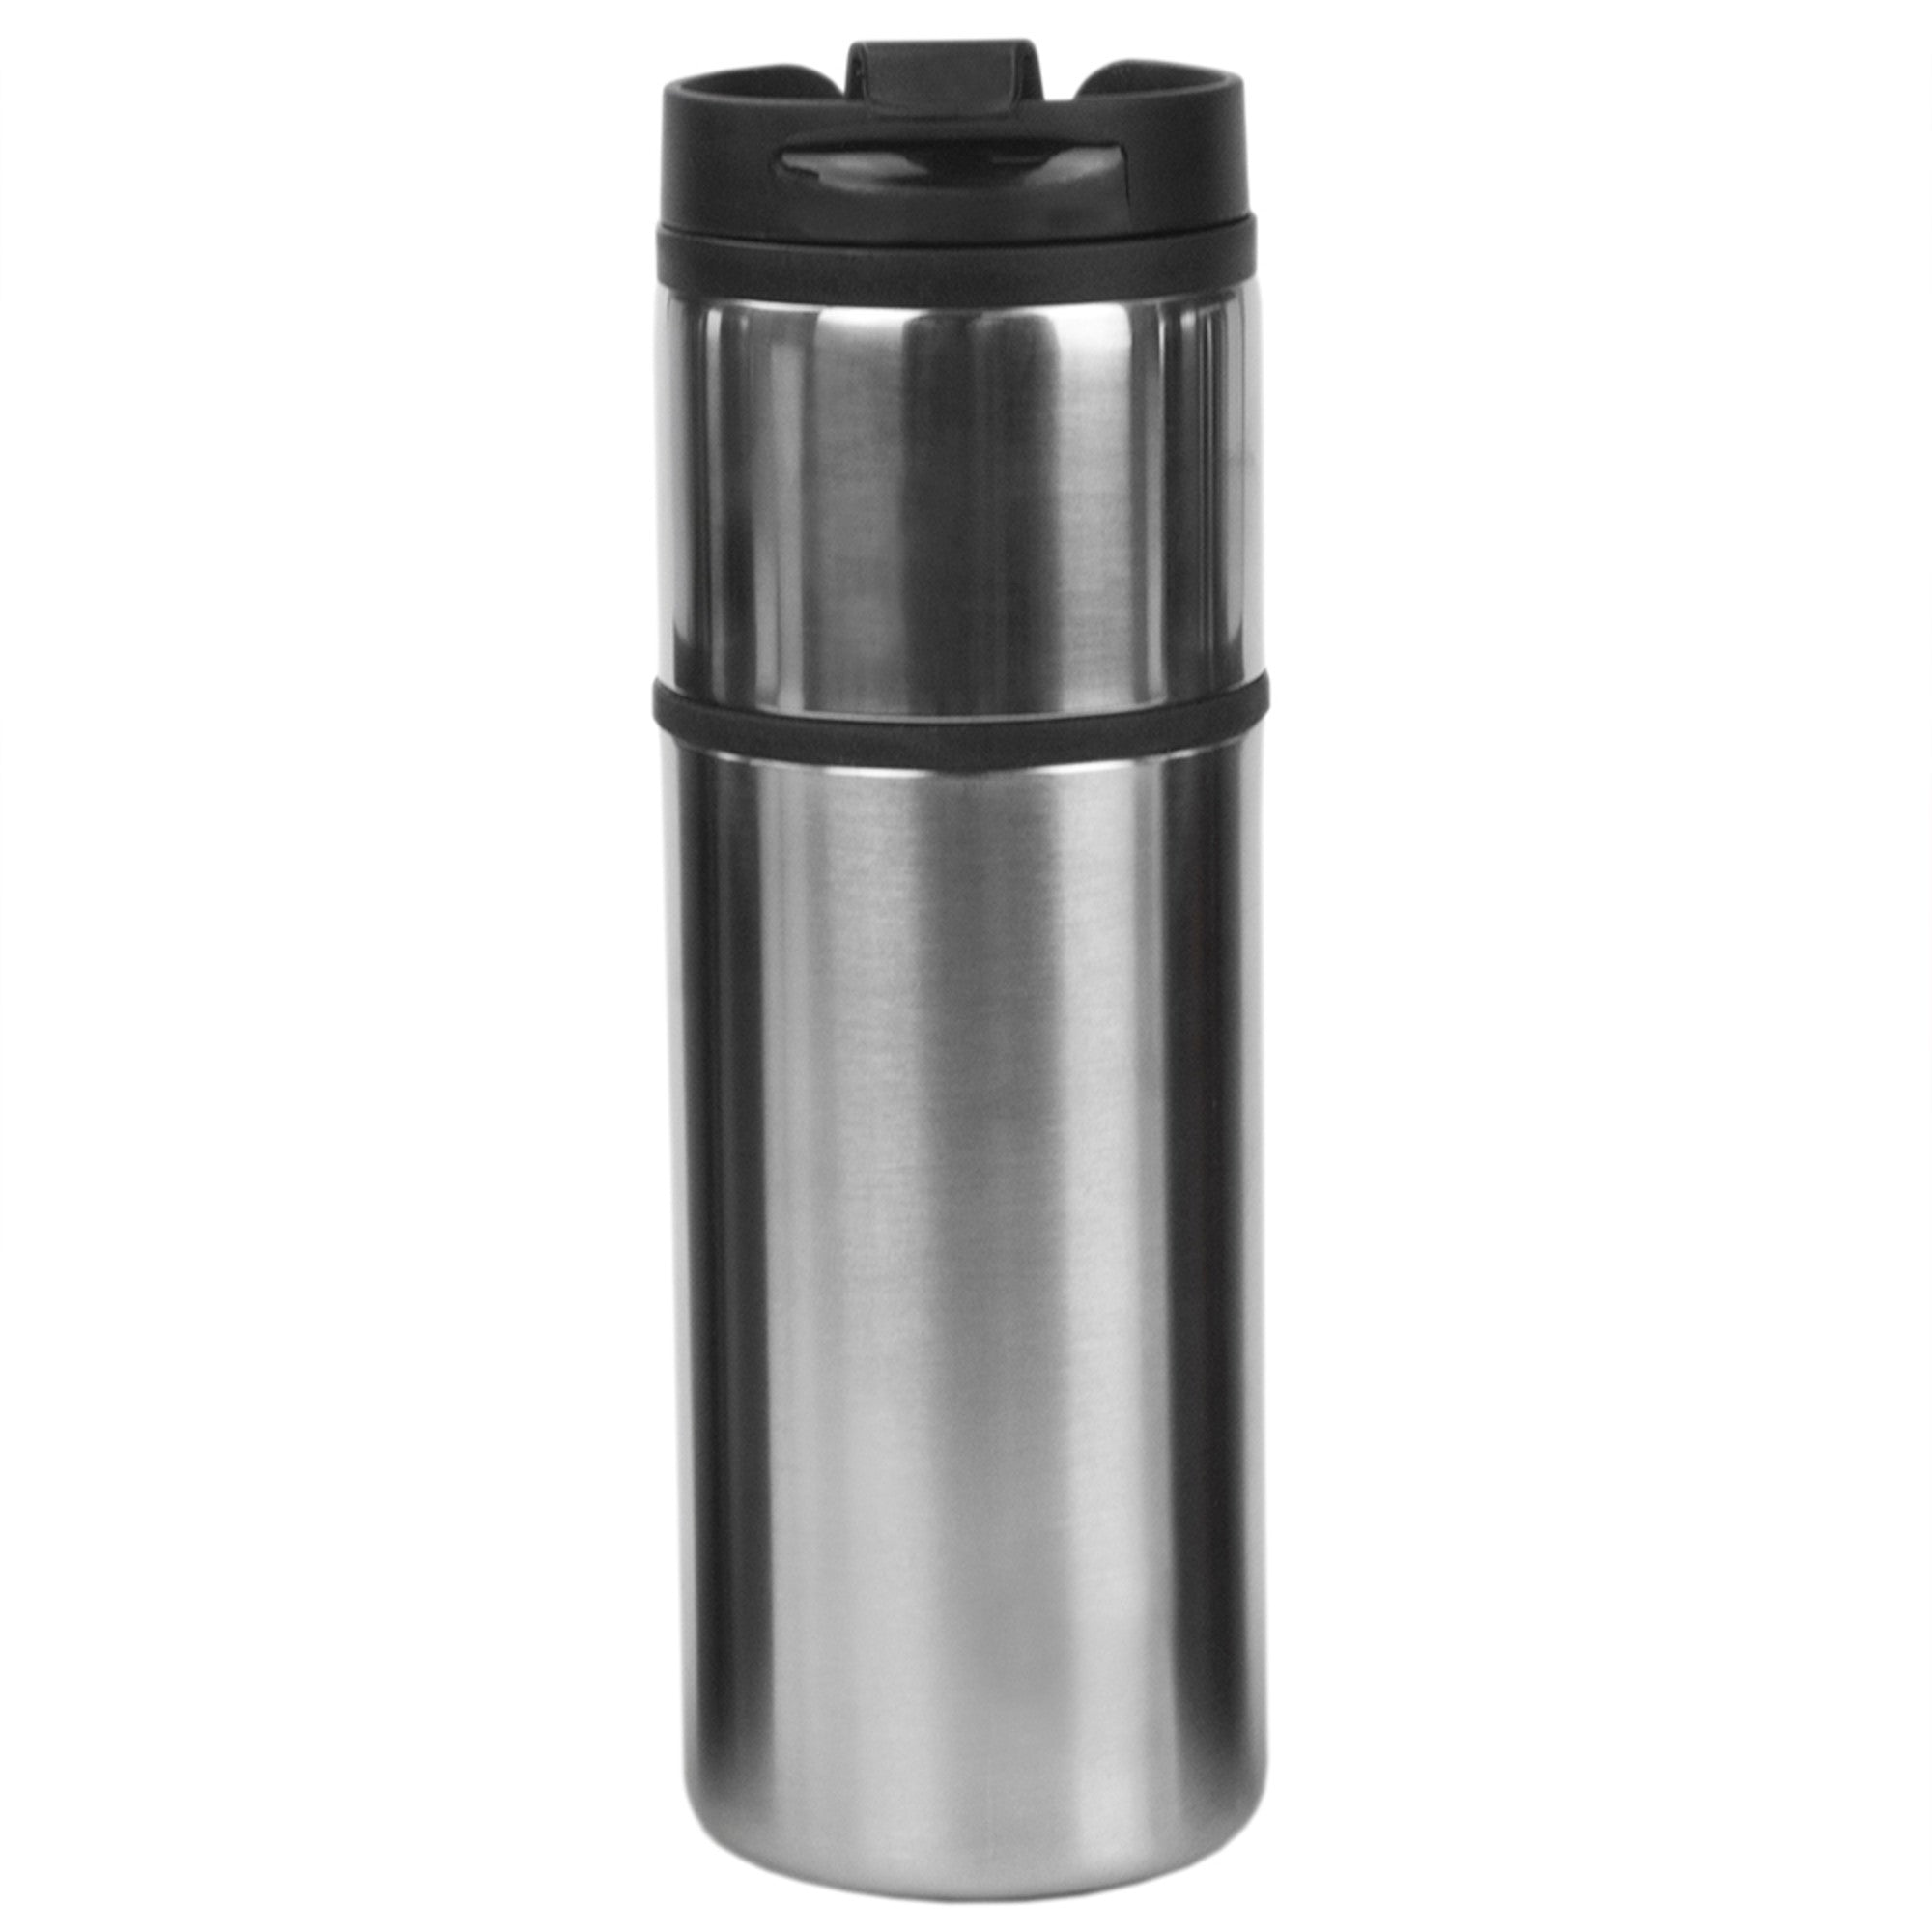 Home Basics Two Tone Stainless Steel 16 oz. Travel Mug, Silver - Silver